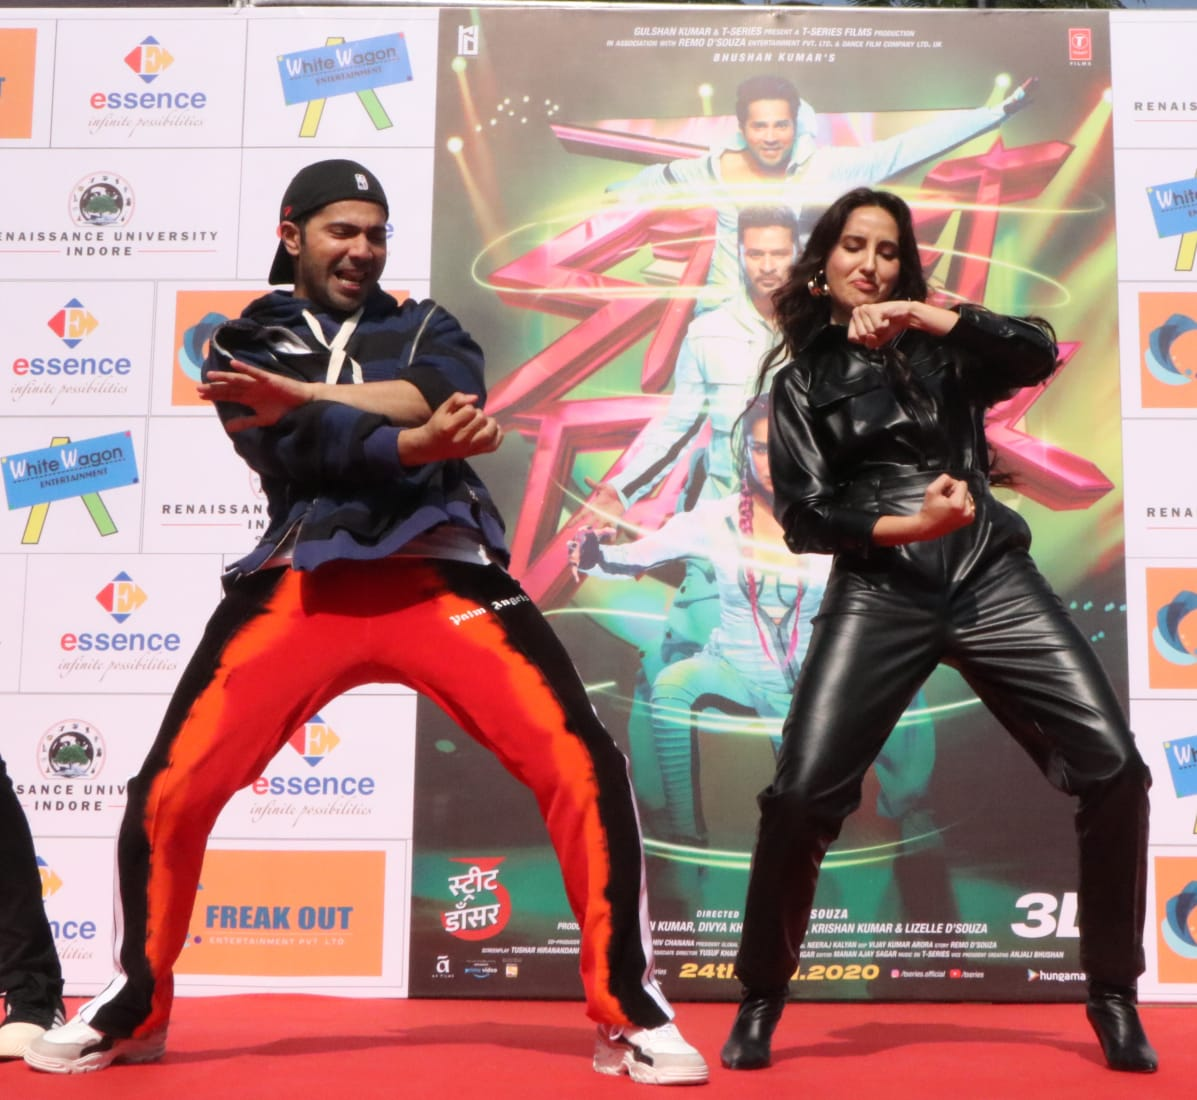 After promoting 'Street Dancer 3D' in #indore #varundhawan and #norafatehi are back in #mumbai  #varundhawanfans #nora #streetdancer3dpic.twitter.com/c4Cgw7hjOM